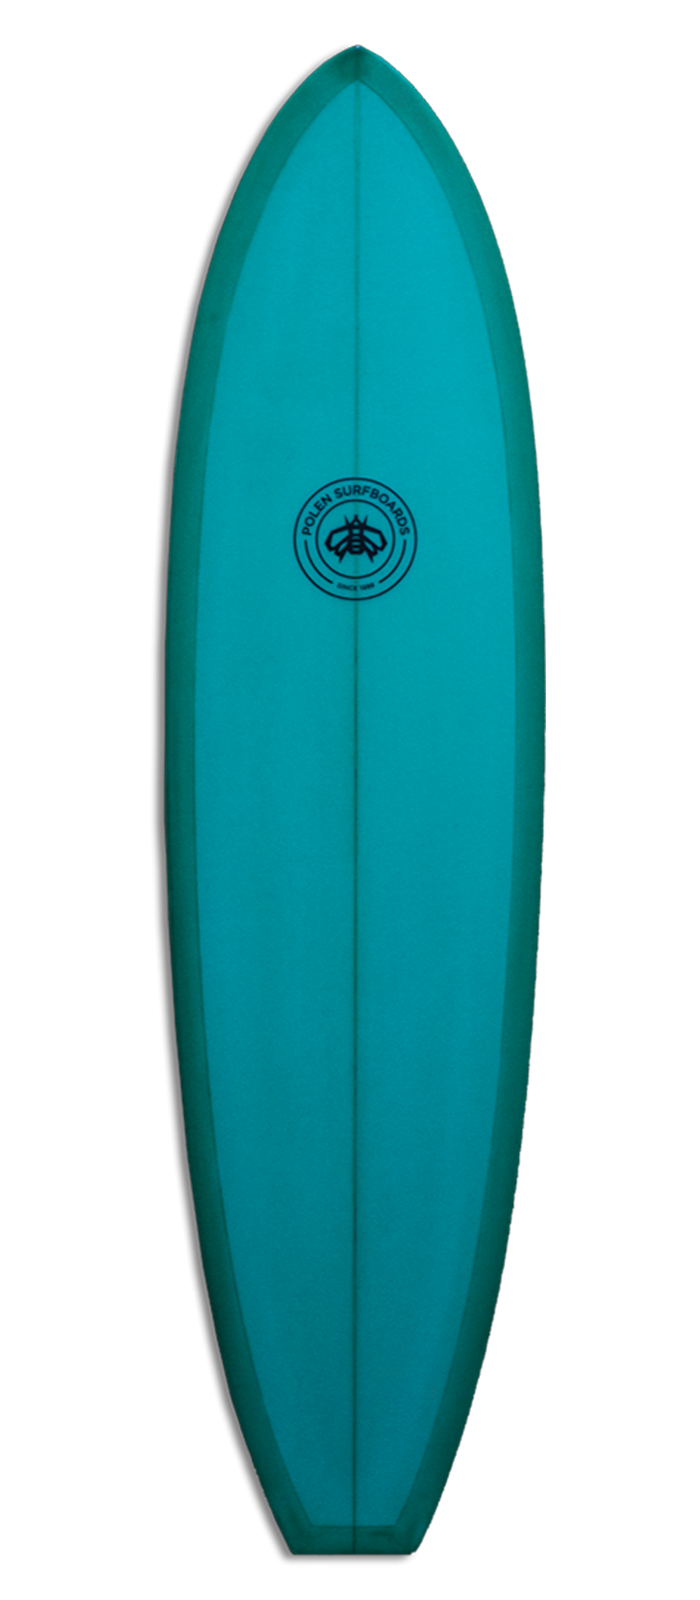 REBEL GRACE surfboard model bottom